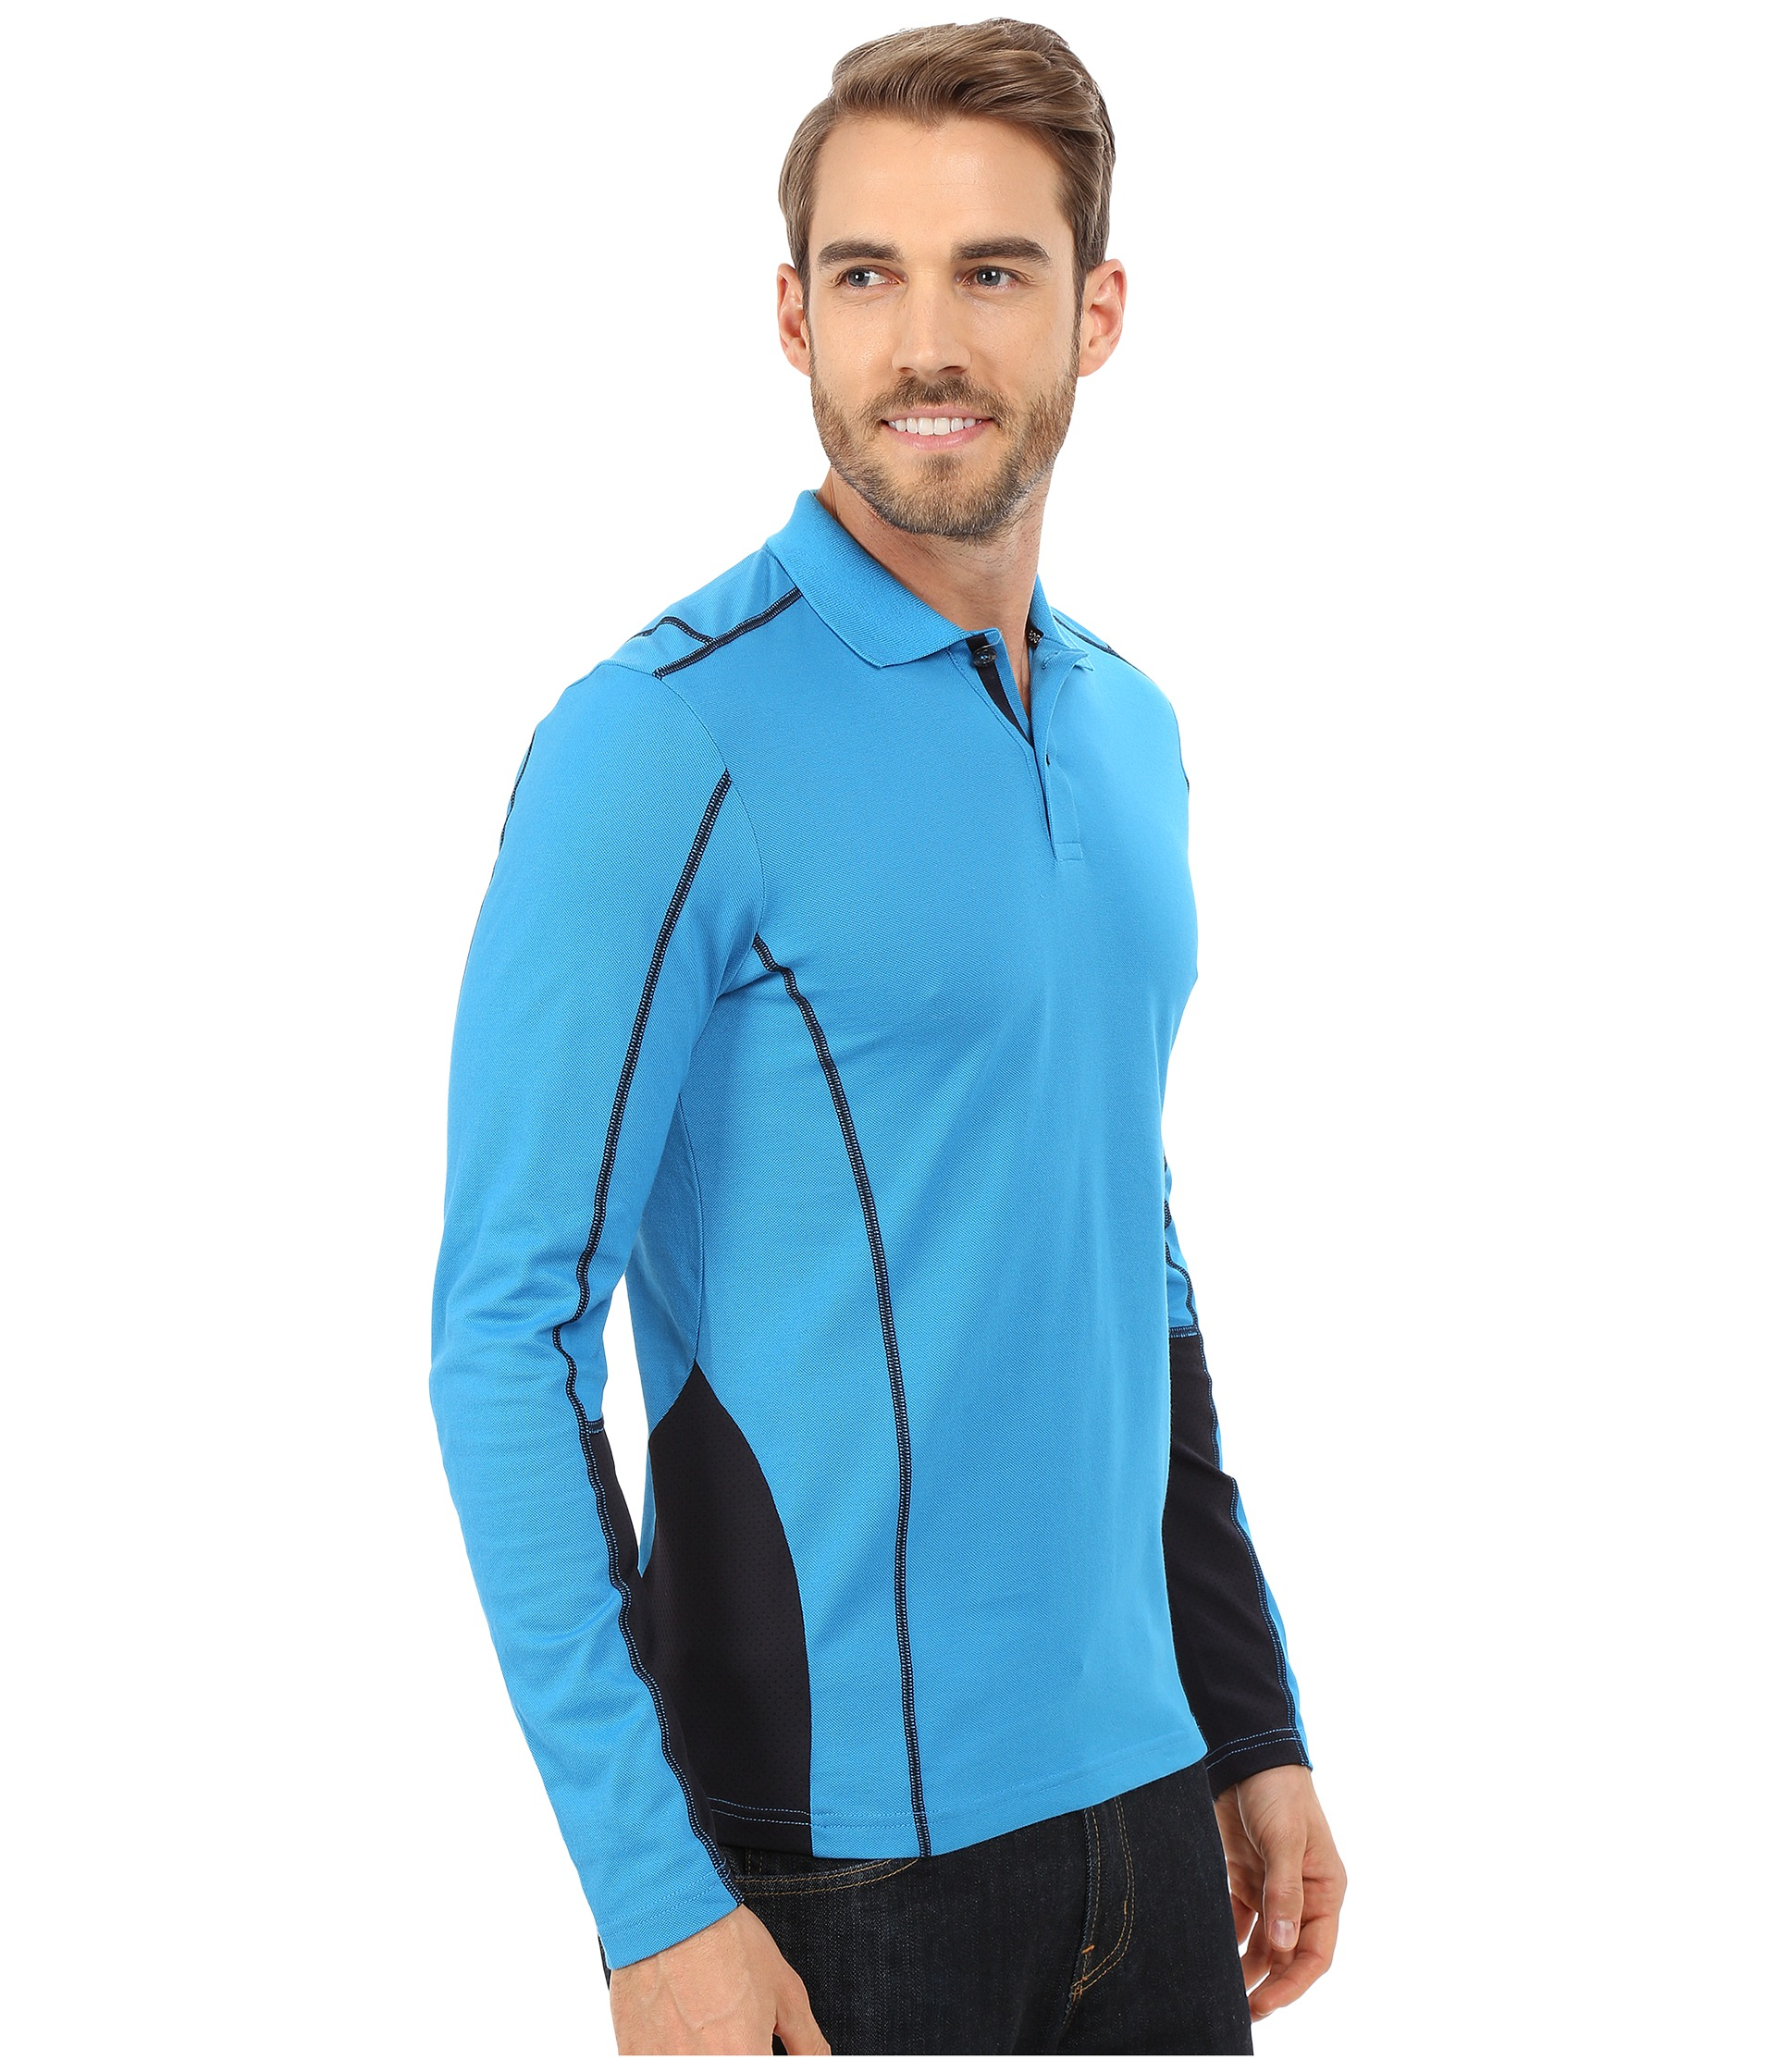 ... Leisure Ralph Lauren Men Mesh Cotton Half-zip Sweaters Blue ...